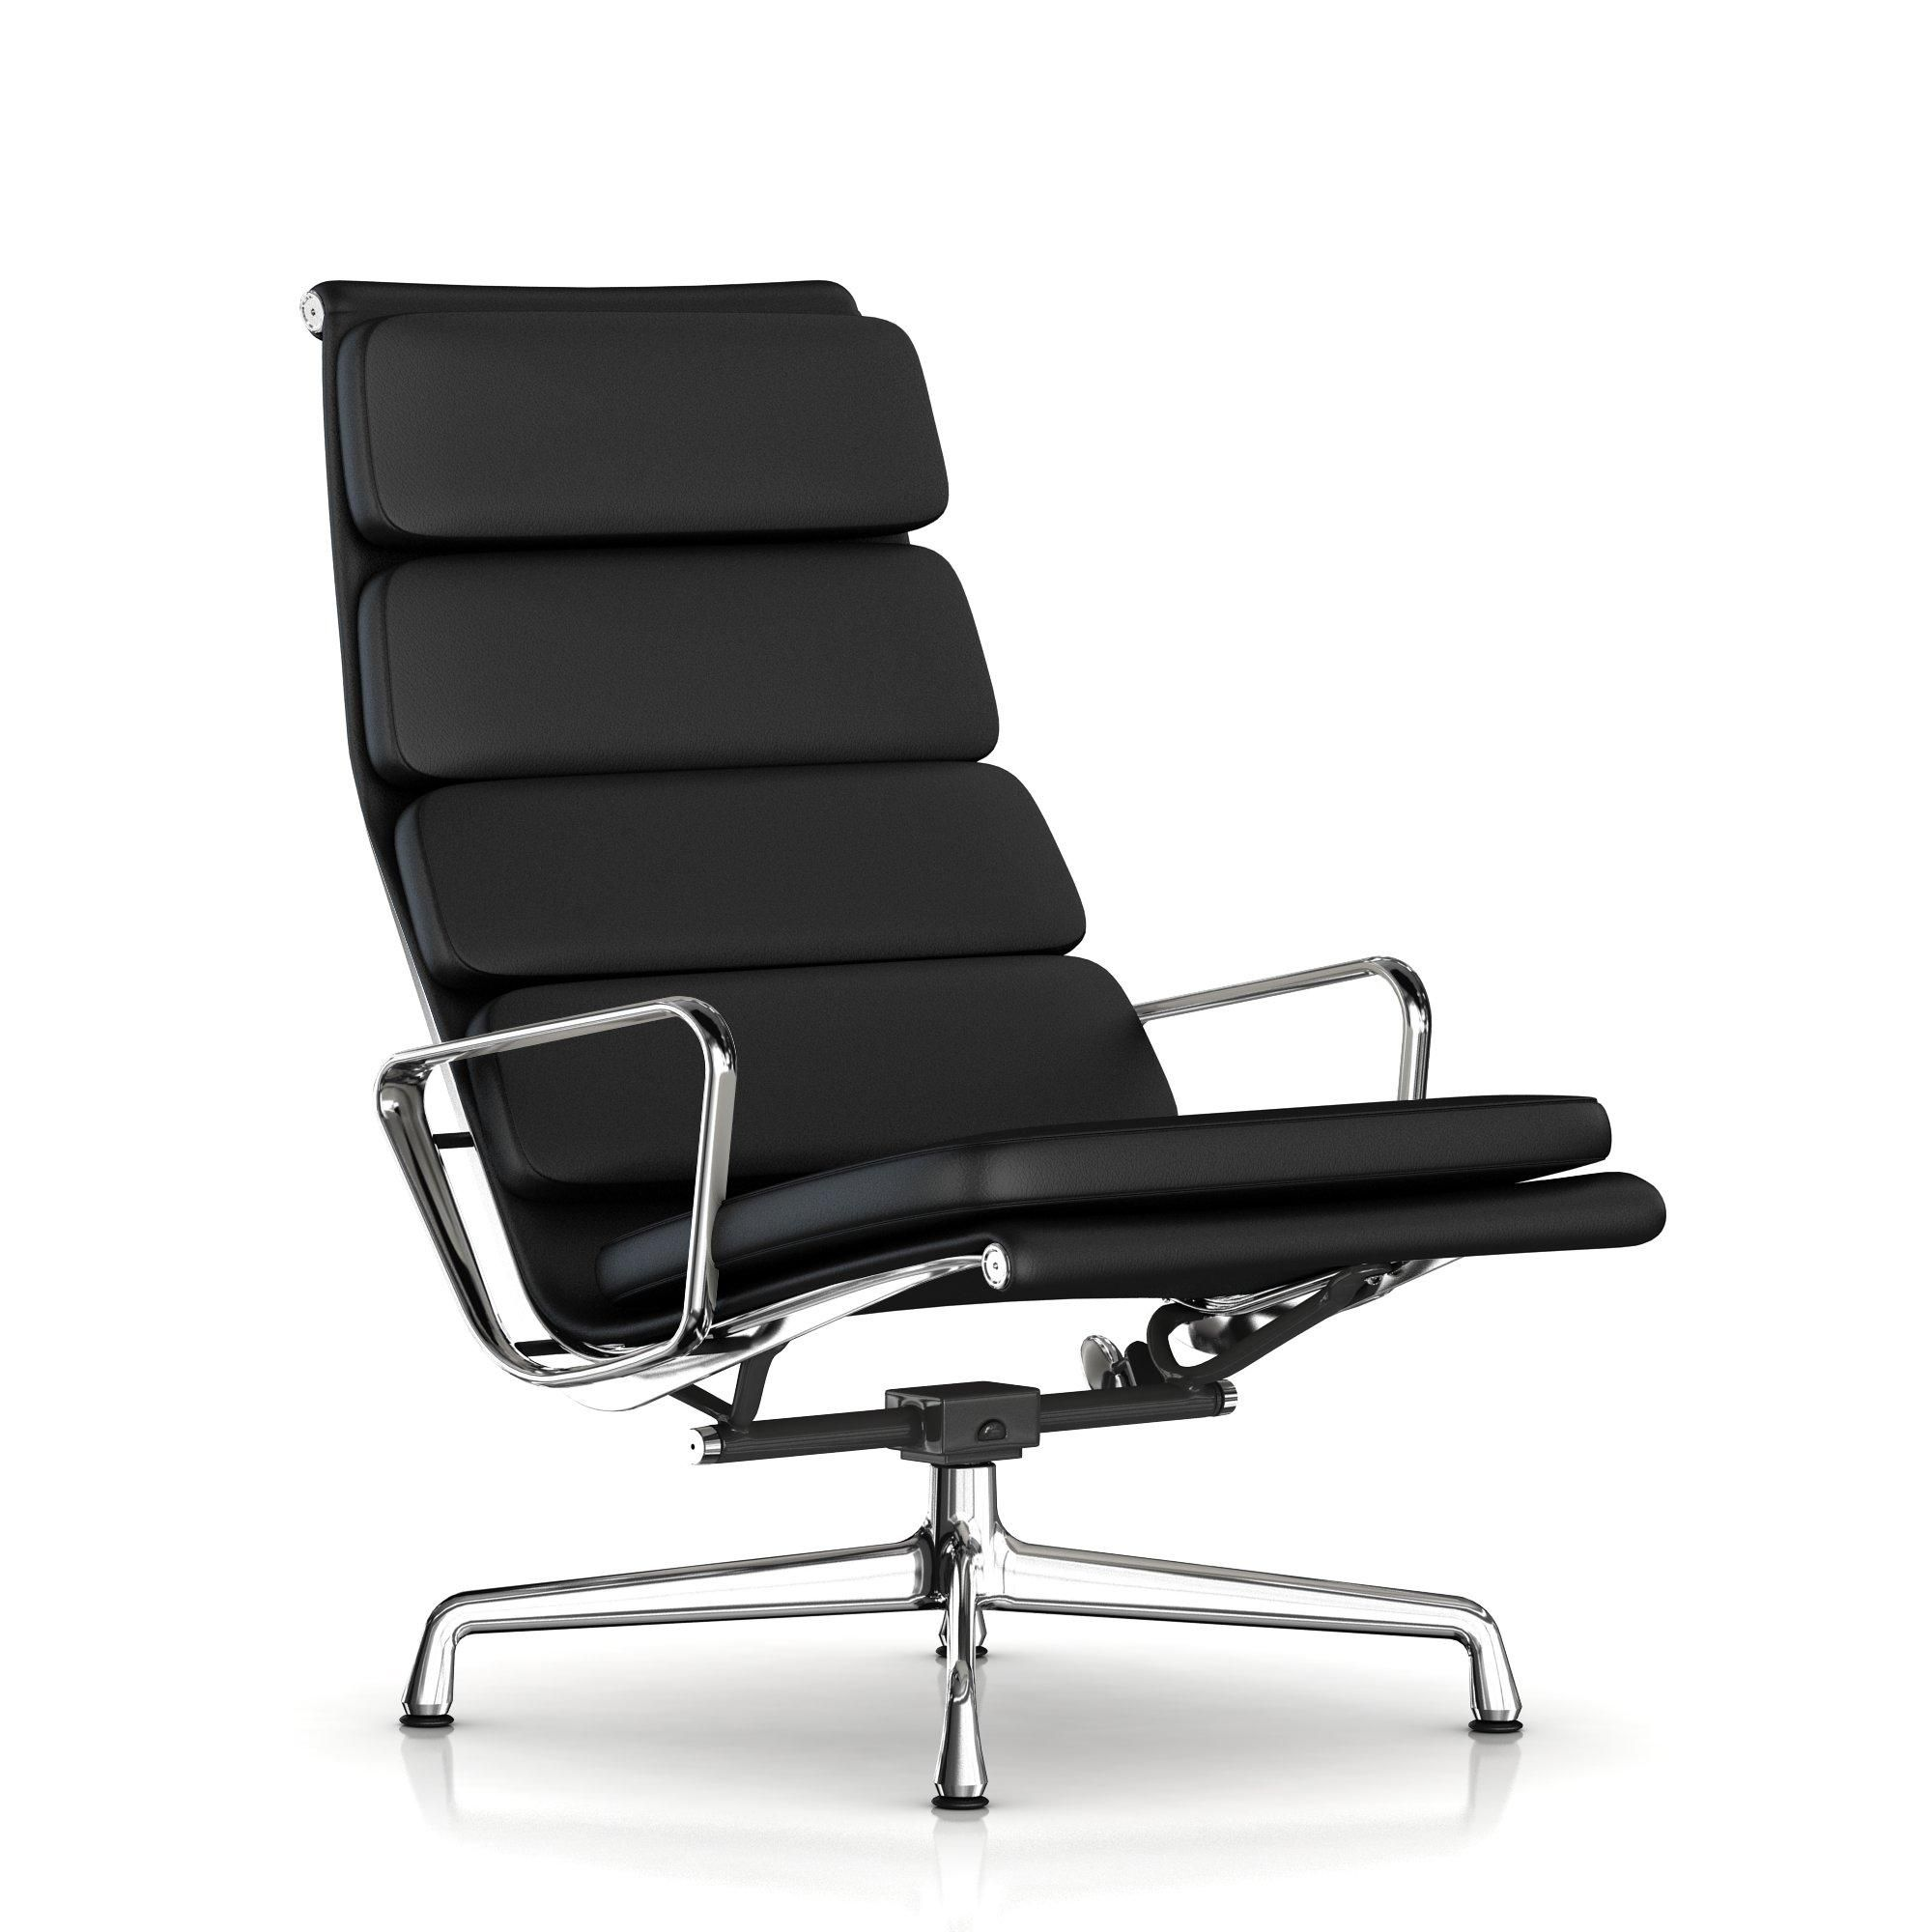 Pin By Gary Derrick On Ideas For The House Chair Eames